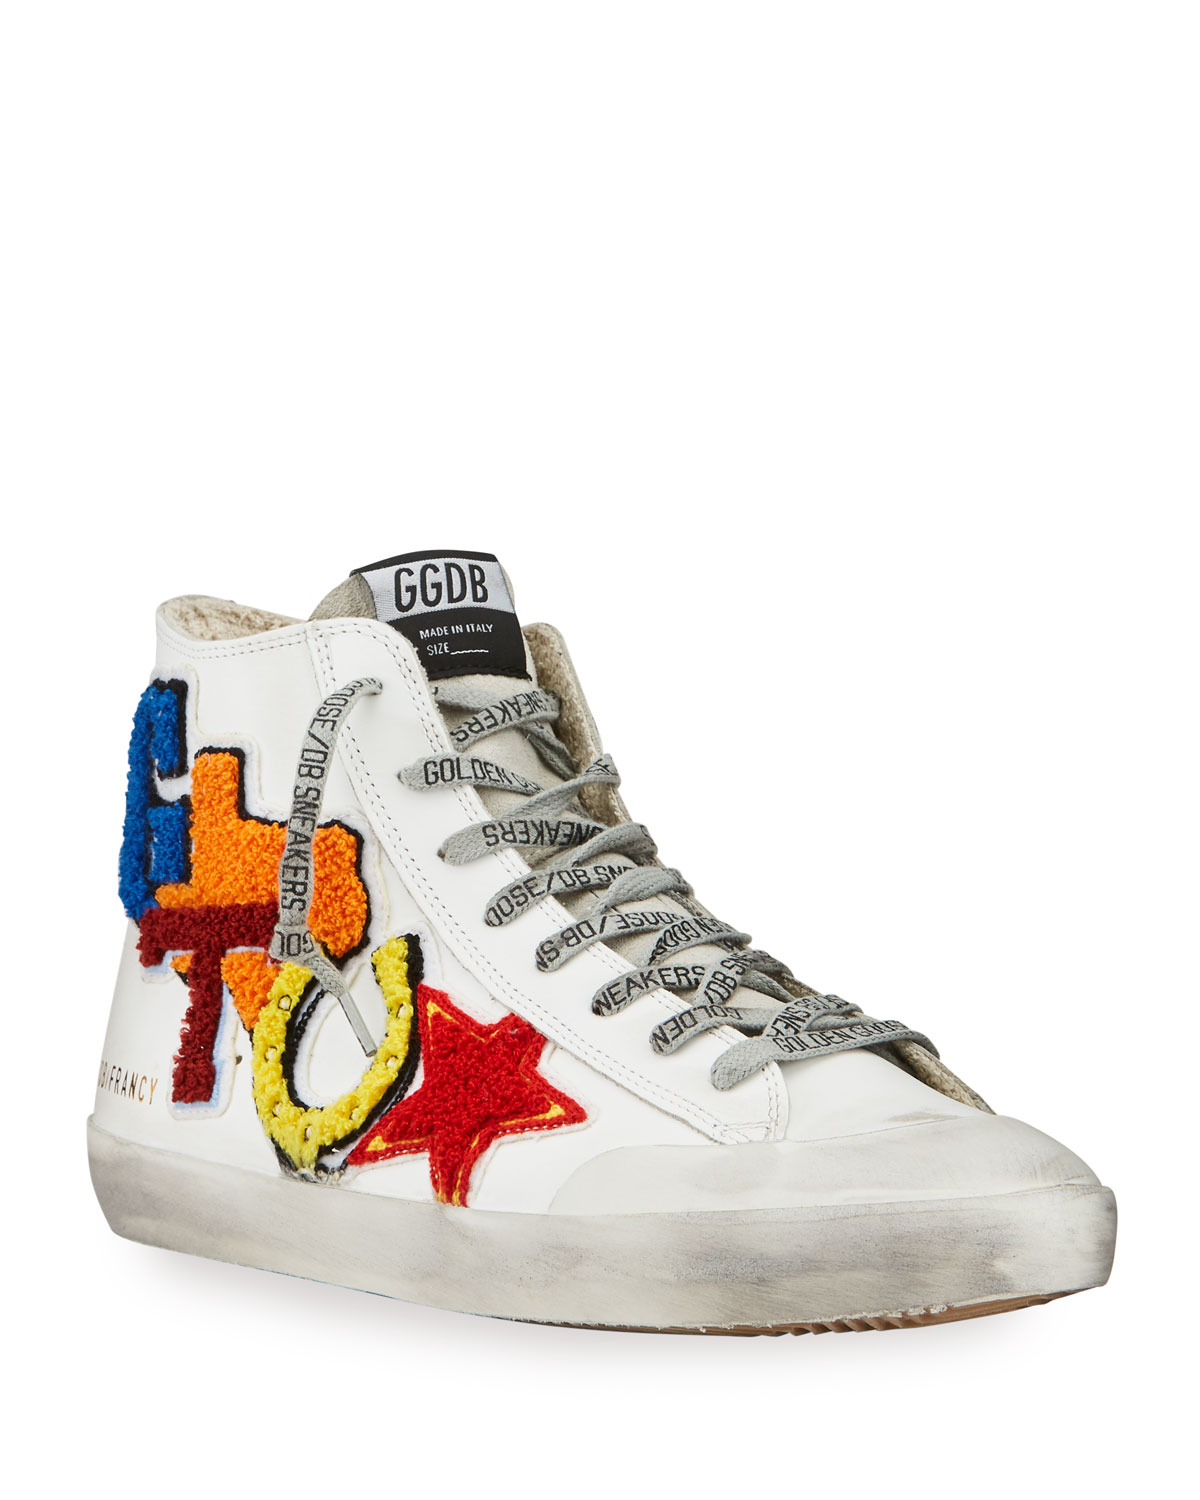 Golden Goose Men's Francy Leather Applique Sneakers